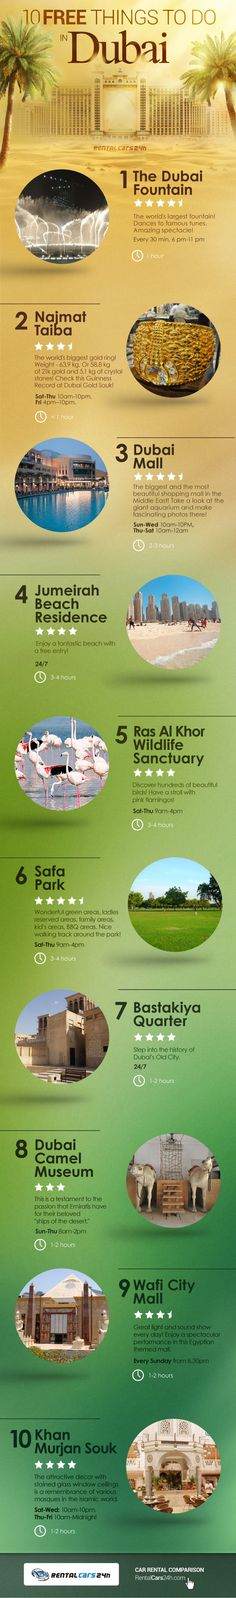 10 FREE Things To Do In Dubai [by RentalCars24H -- via #tipsographic]. More at tipsographic.com